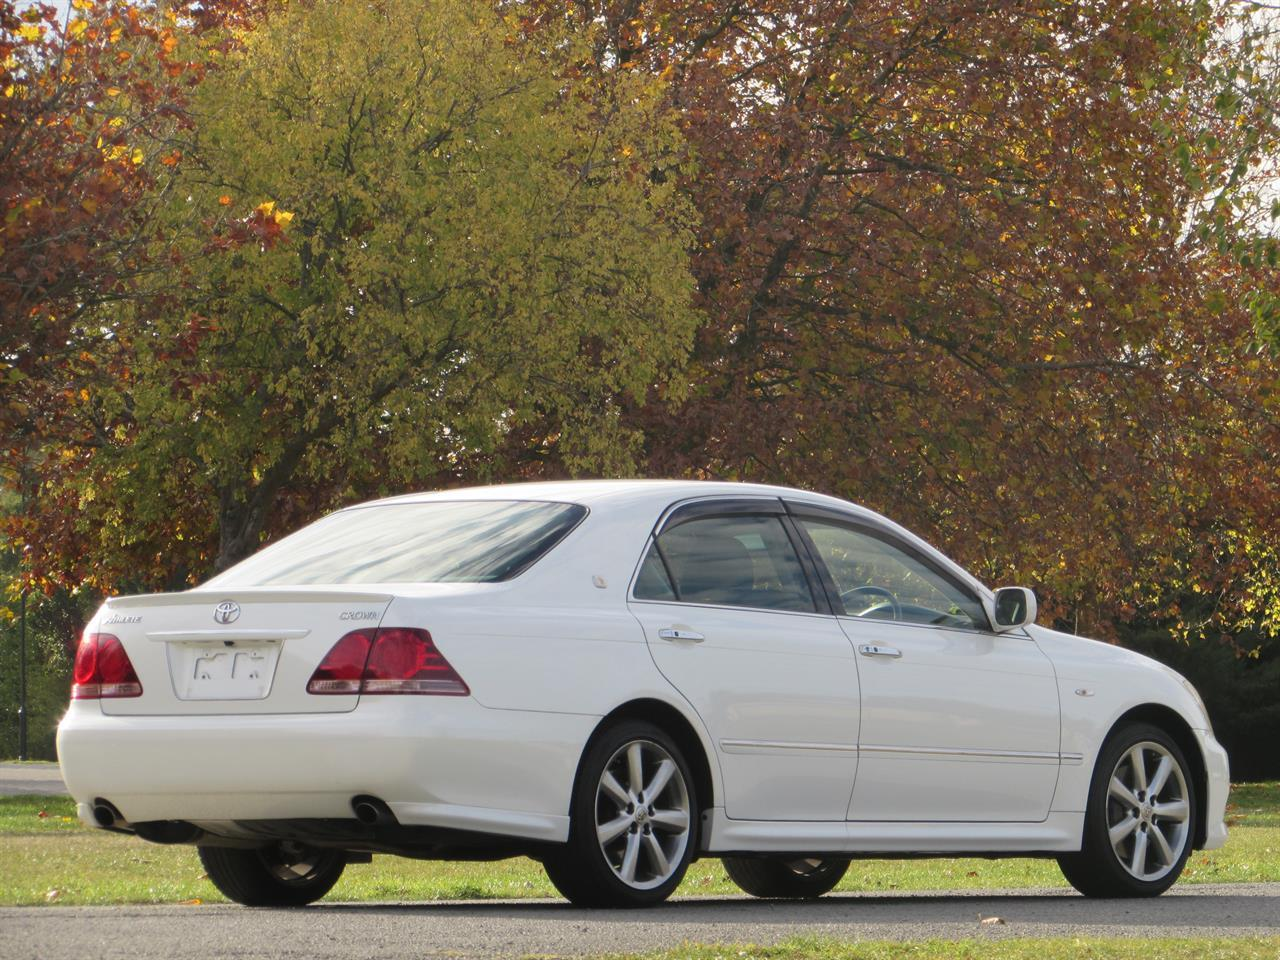 image-5, 2006 Toyota Crown Athlete at Christchurch